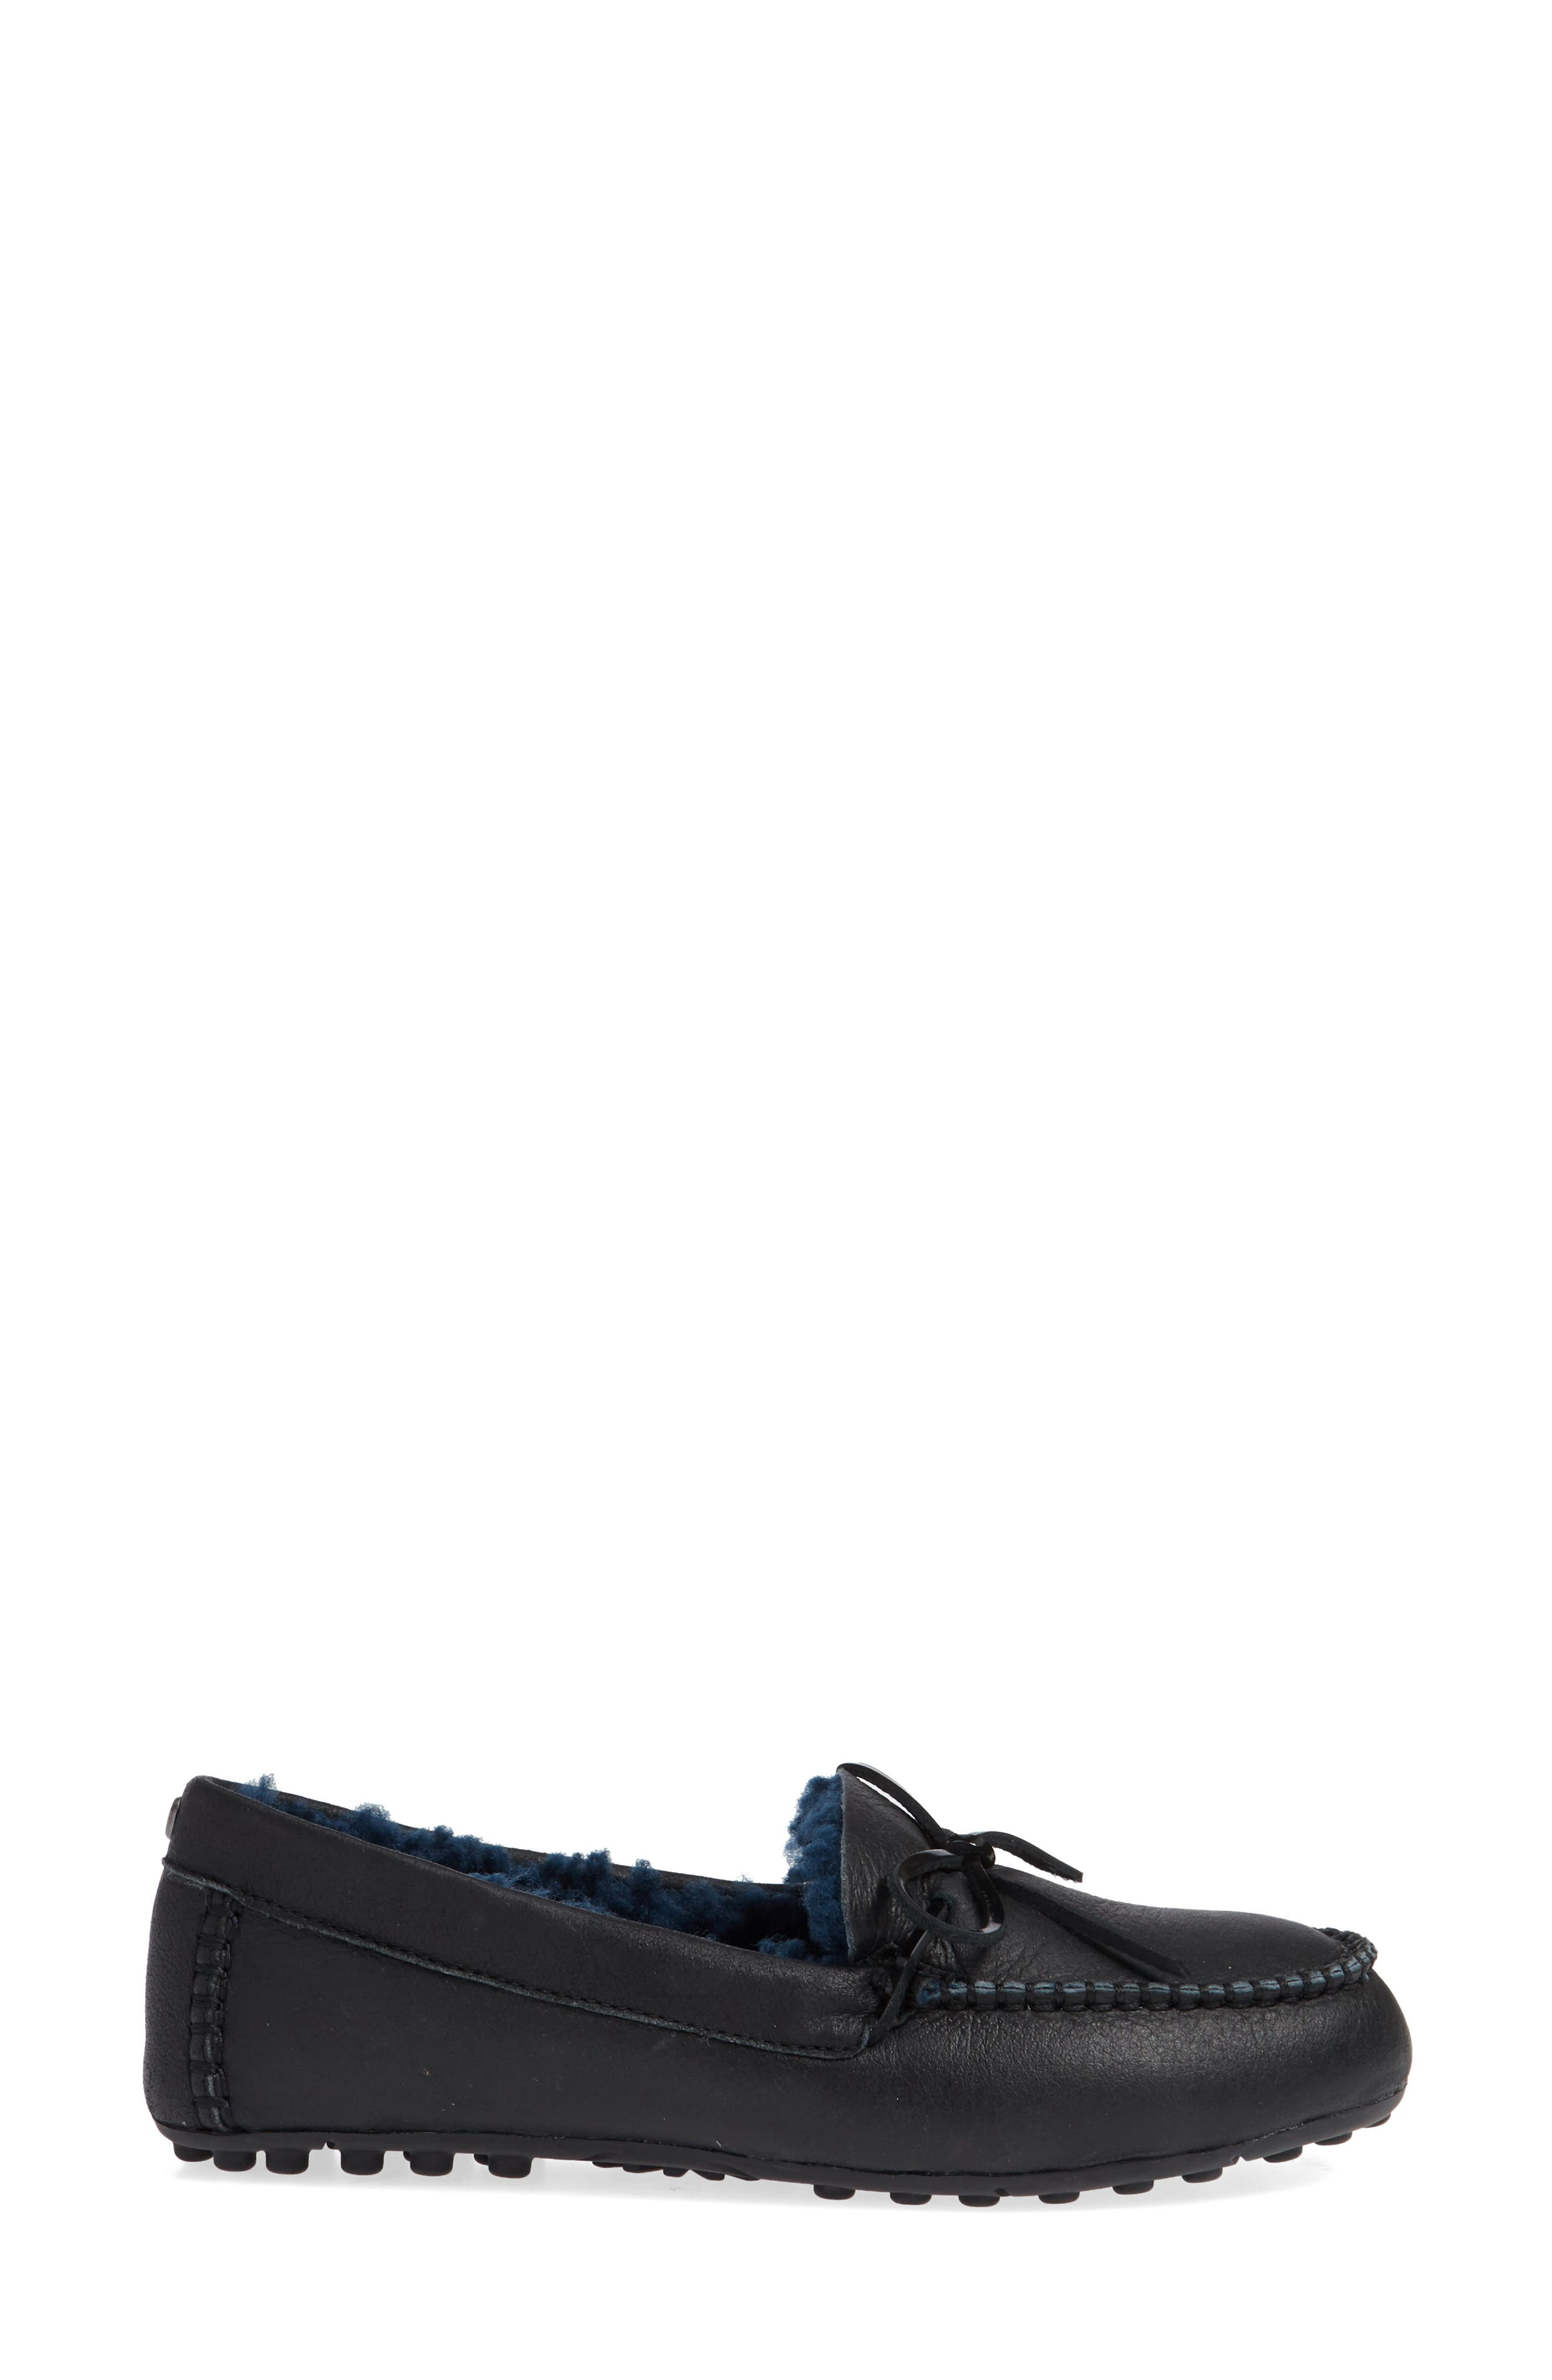 Deluxe Loafer,                             Alternate thumbnail 3, color,                             BLACK LEATHER